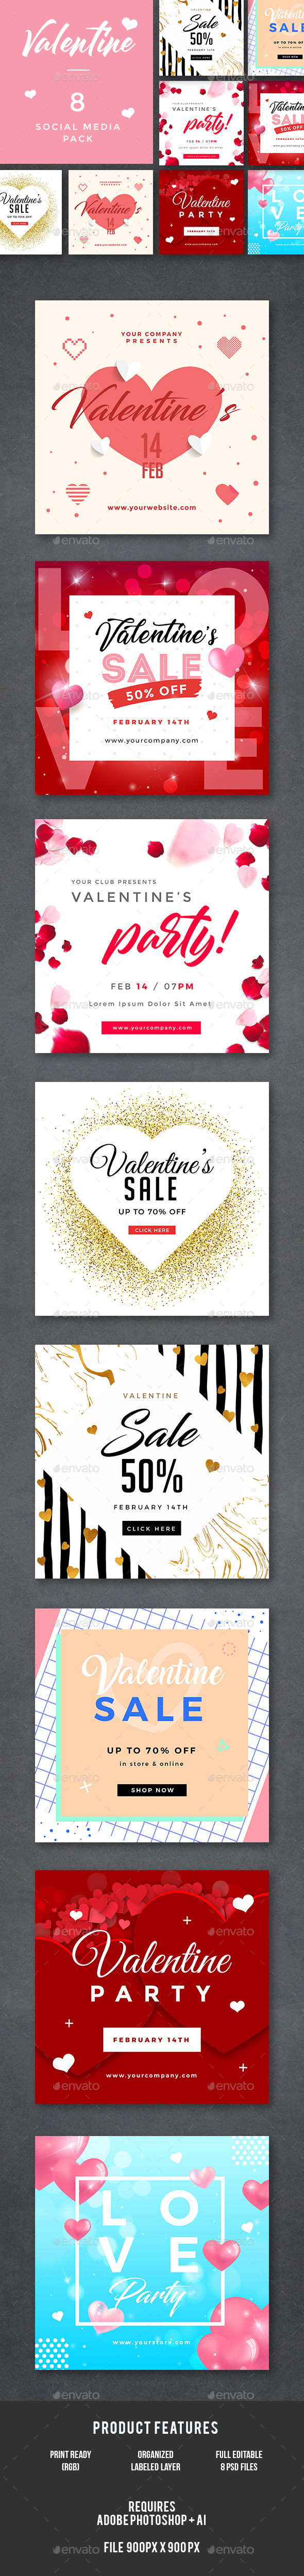 Valentines Day Banners - Banners & Ads Web Elements